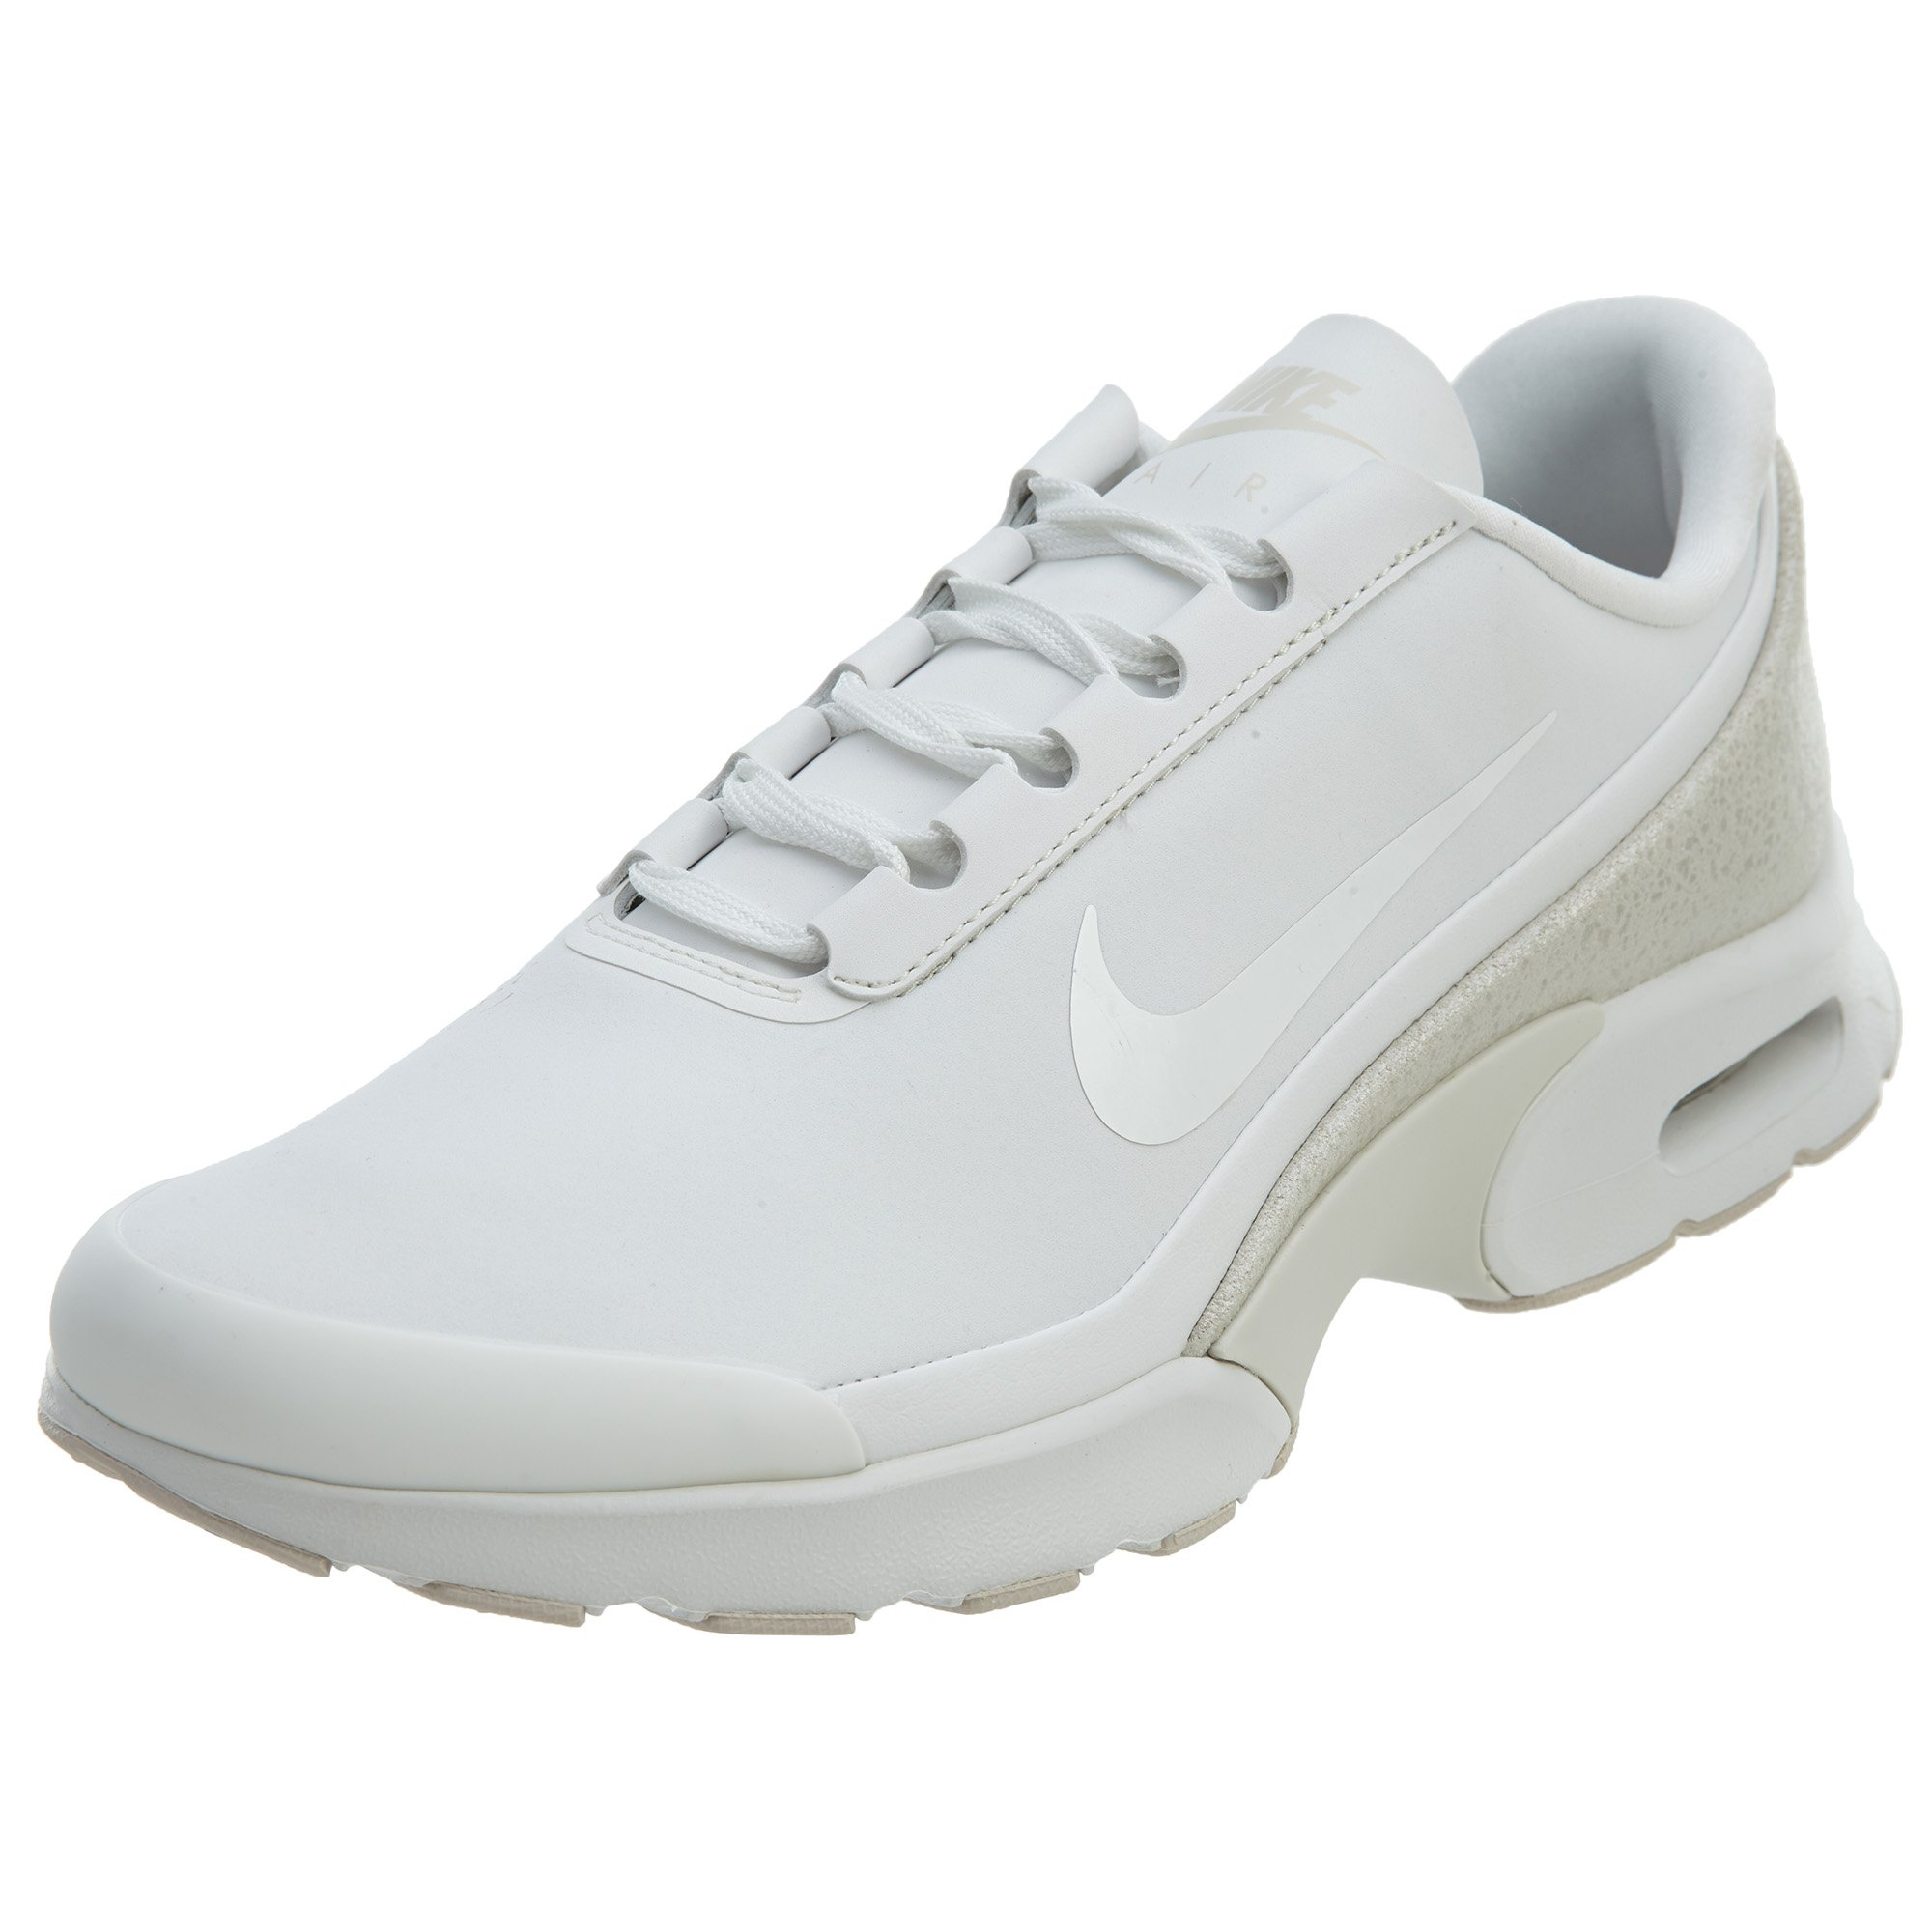 NIKE Air Max Jewell Lea Womens Style : AH6790-100 Size : 10 M US